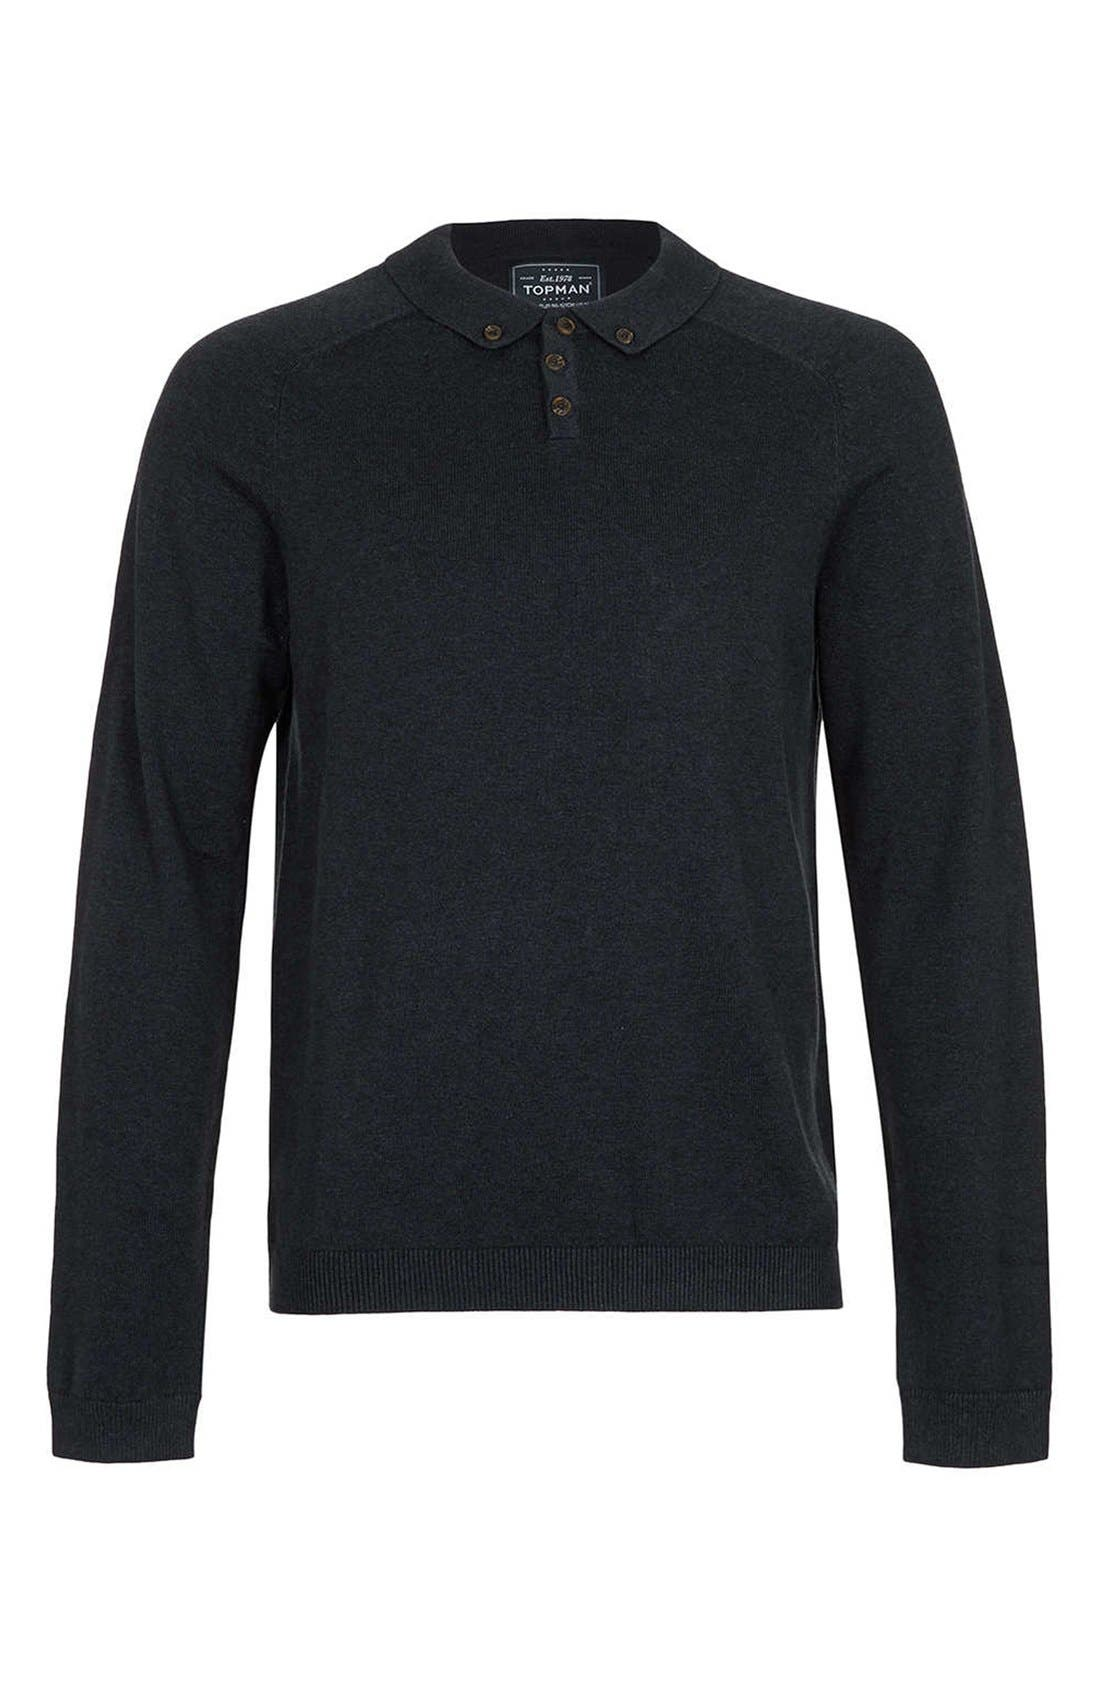 Alternate Image 1 Selected - Topman Long Sleeve Knit Polo